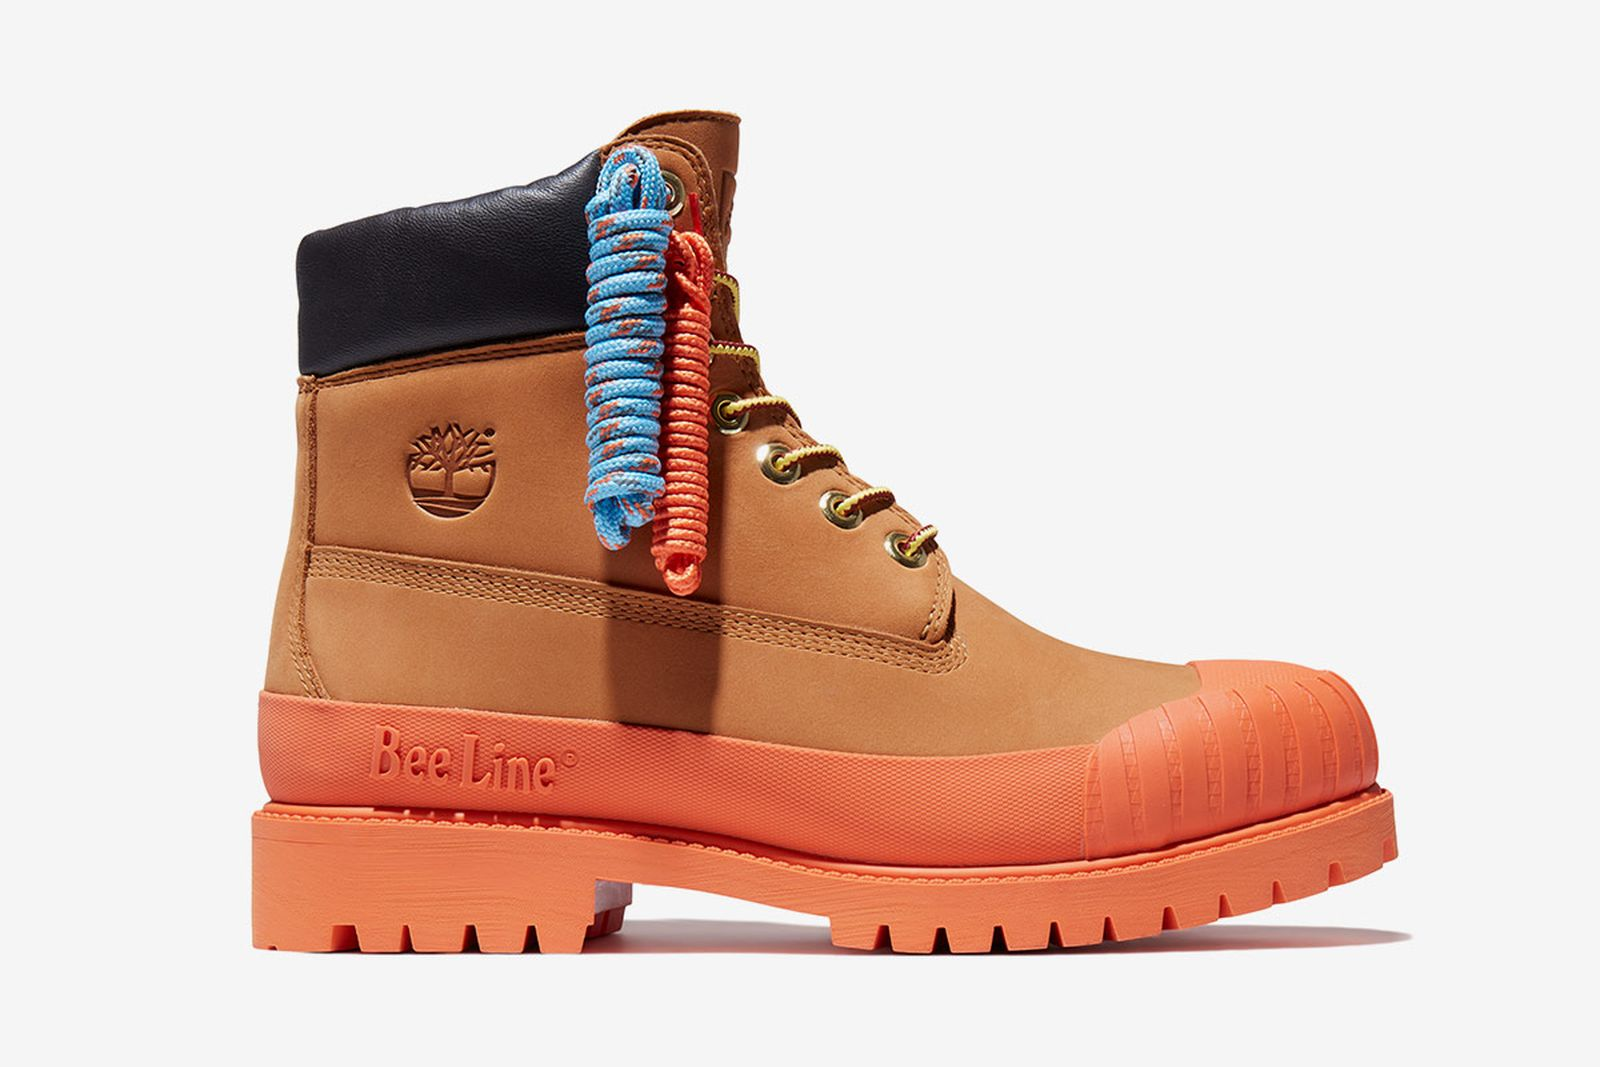 bee-line-billionaire-boys-club-timberland-boot-release-date-price-005